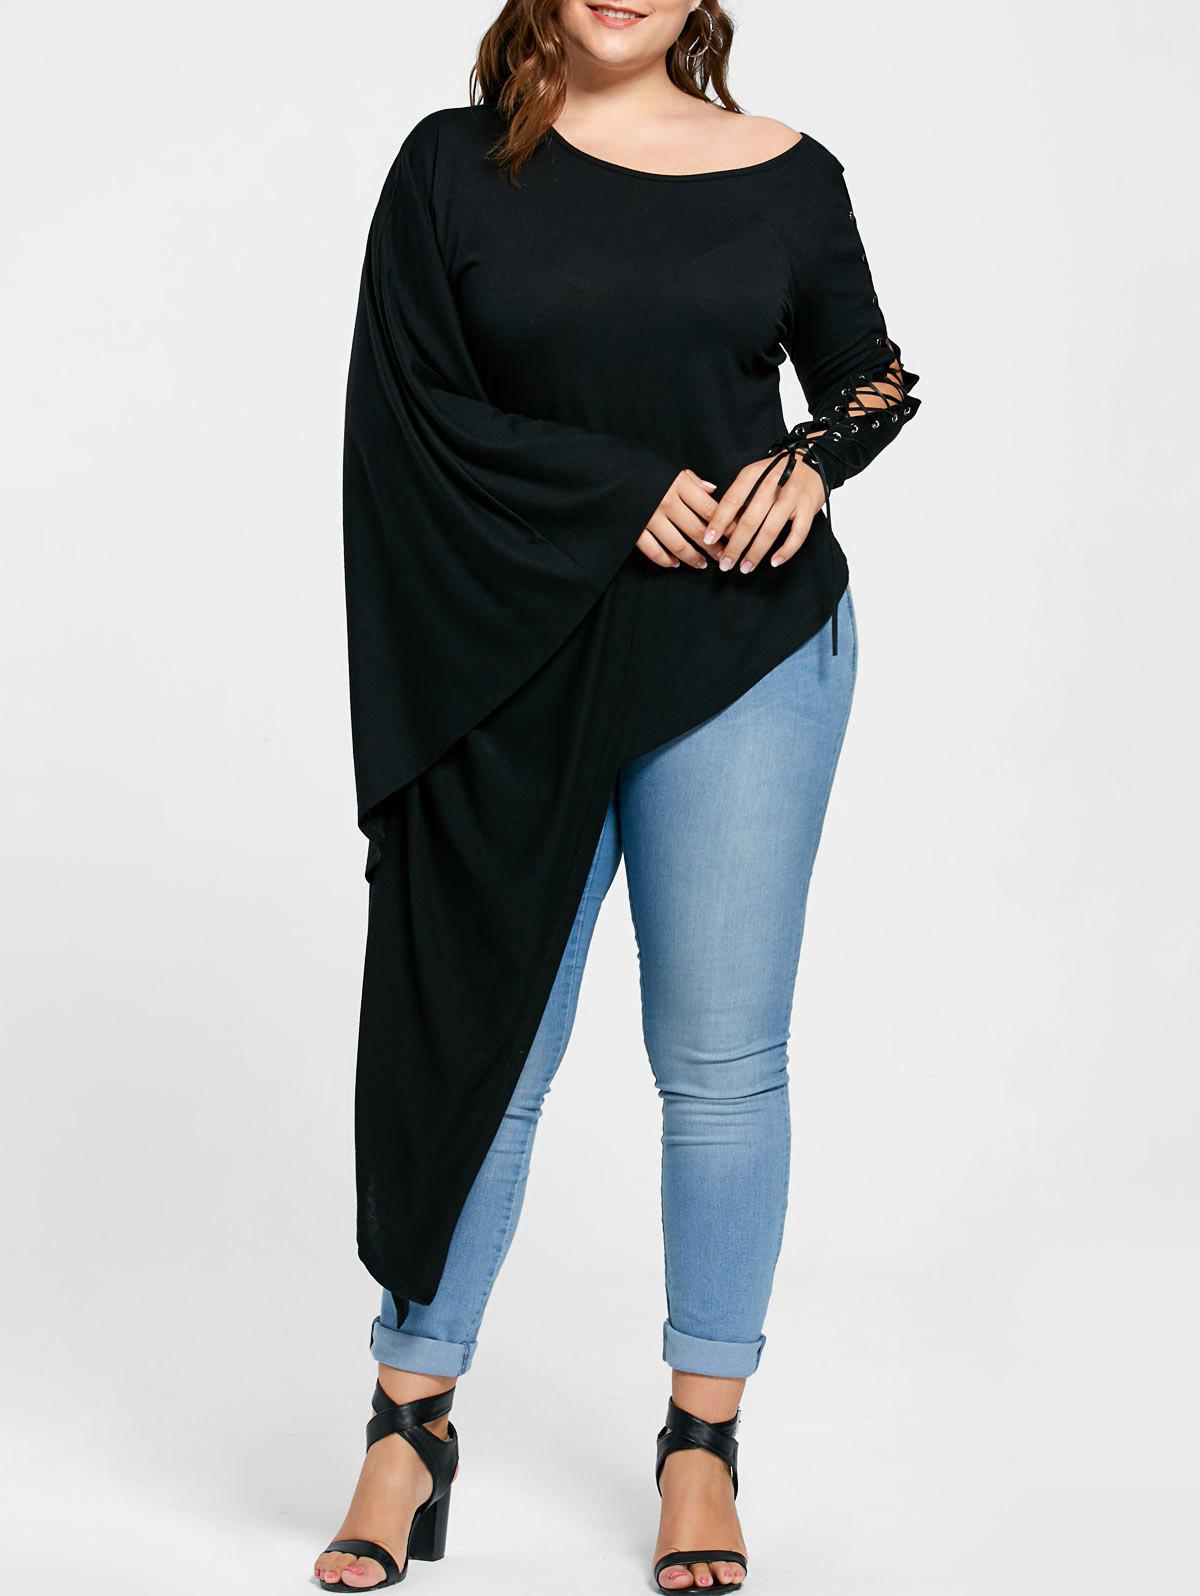 Plus Size Lace Up Batwing Sleeve Asymmetric T-shirt - BLACK 5XL